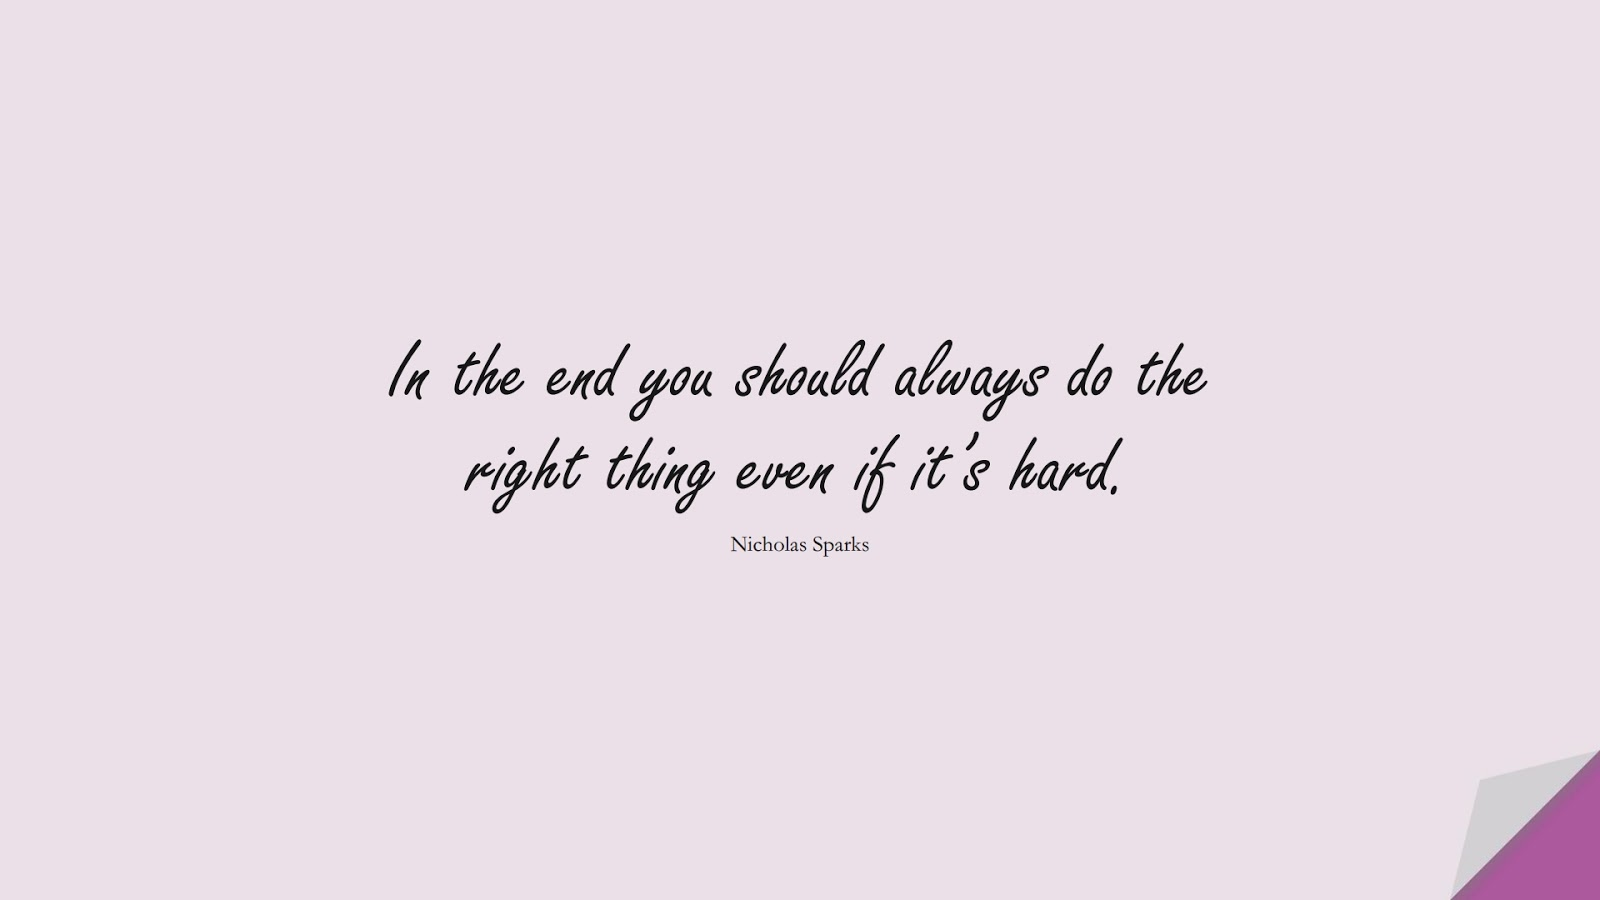 In the end you should always do the right thing even if it's hard. (Nicholas Sparks);  #CharacterQuotes